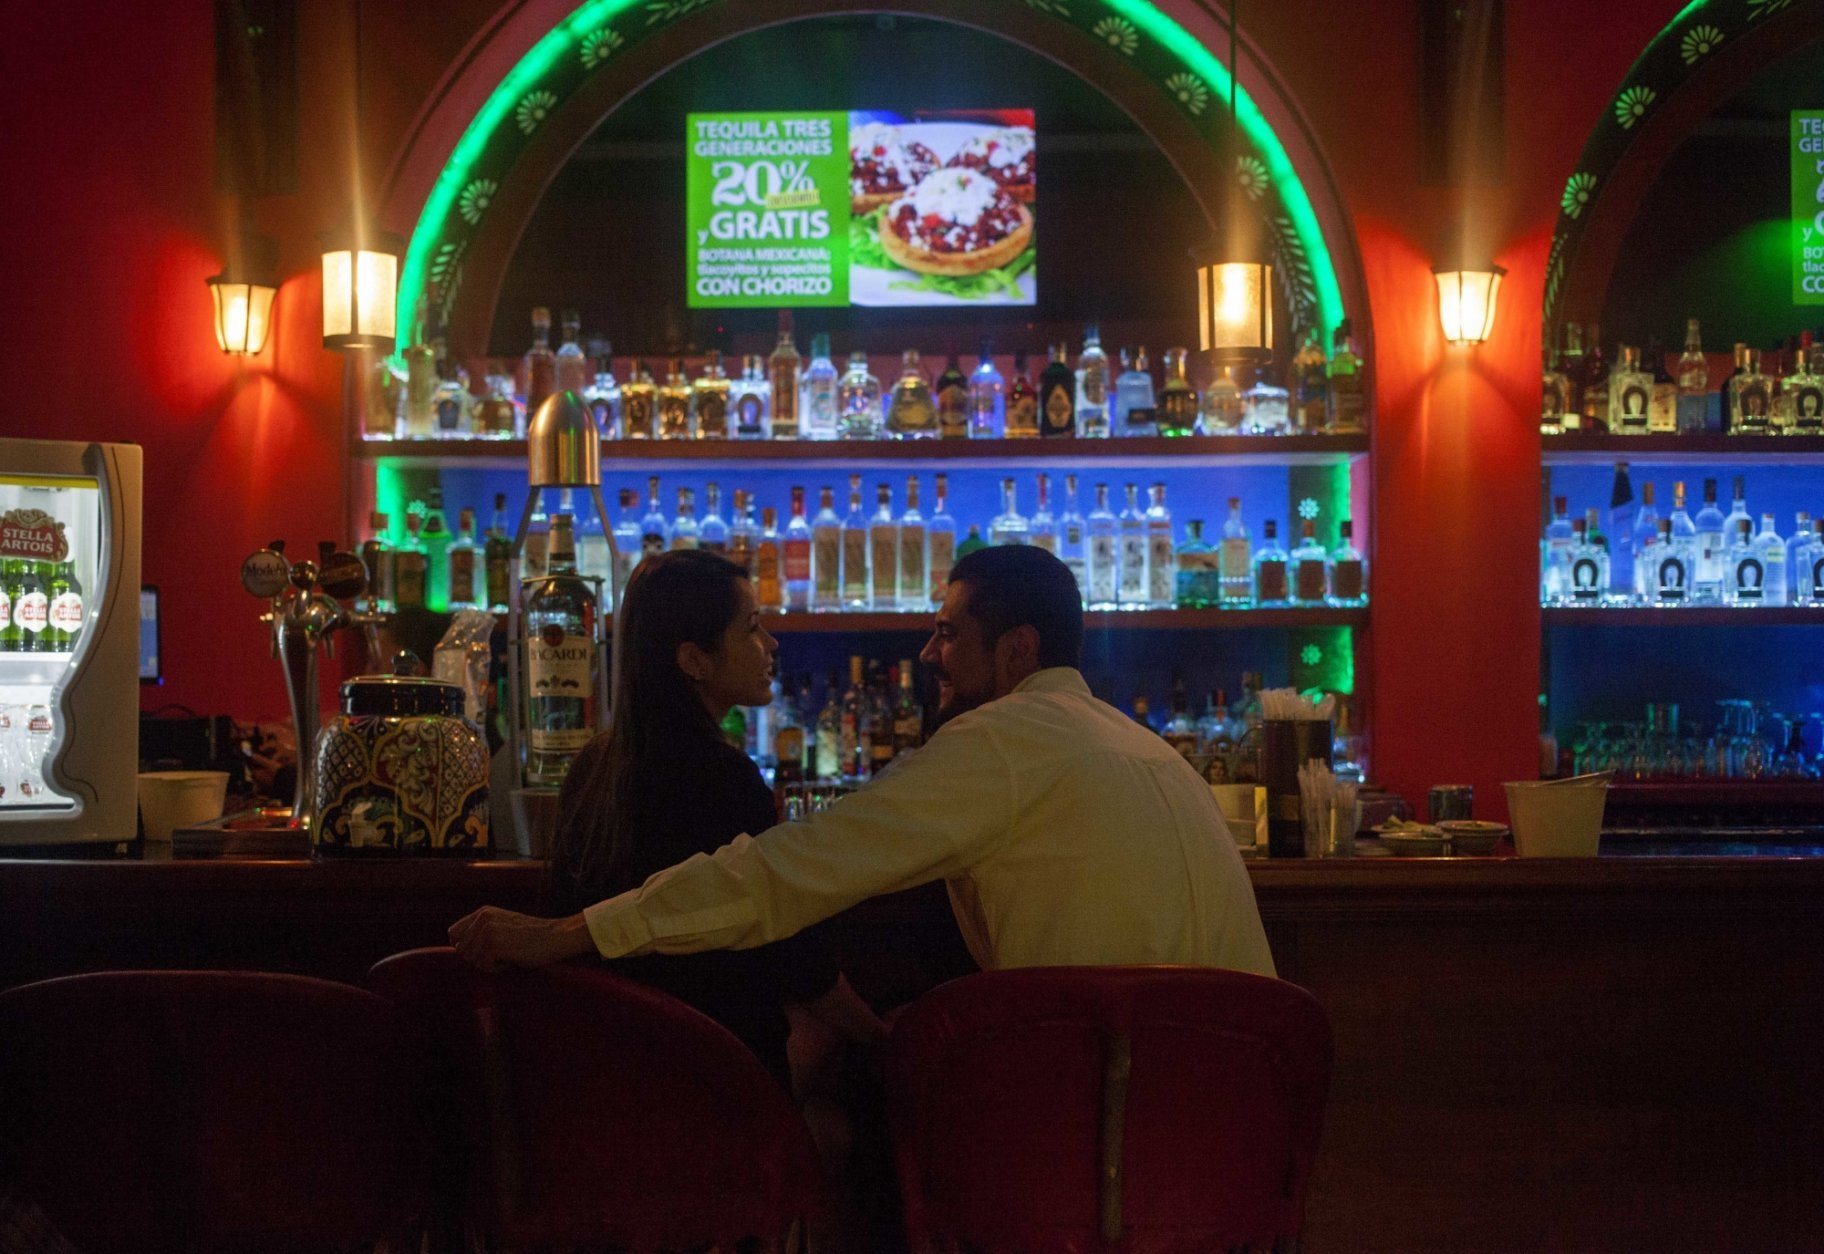 FILE - In this Aug. 21, 2015 file photo, a couple sits in the upstairs bar at the Tenampa cantina at the  Garibaldi Plaza, in Mexico City. At the Tenampa cantina, which bills itself as having first brought mariachi troupes to the plaza in the 1920s, a manager said it was business as usual Saturday, Sept. 15, 2018, despite a brazen Friday night shooting that killed four people and wounded nine in Garibaldi Plaza. (AP Photo/Sofia Jaramillo, File)